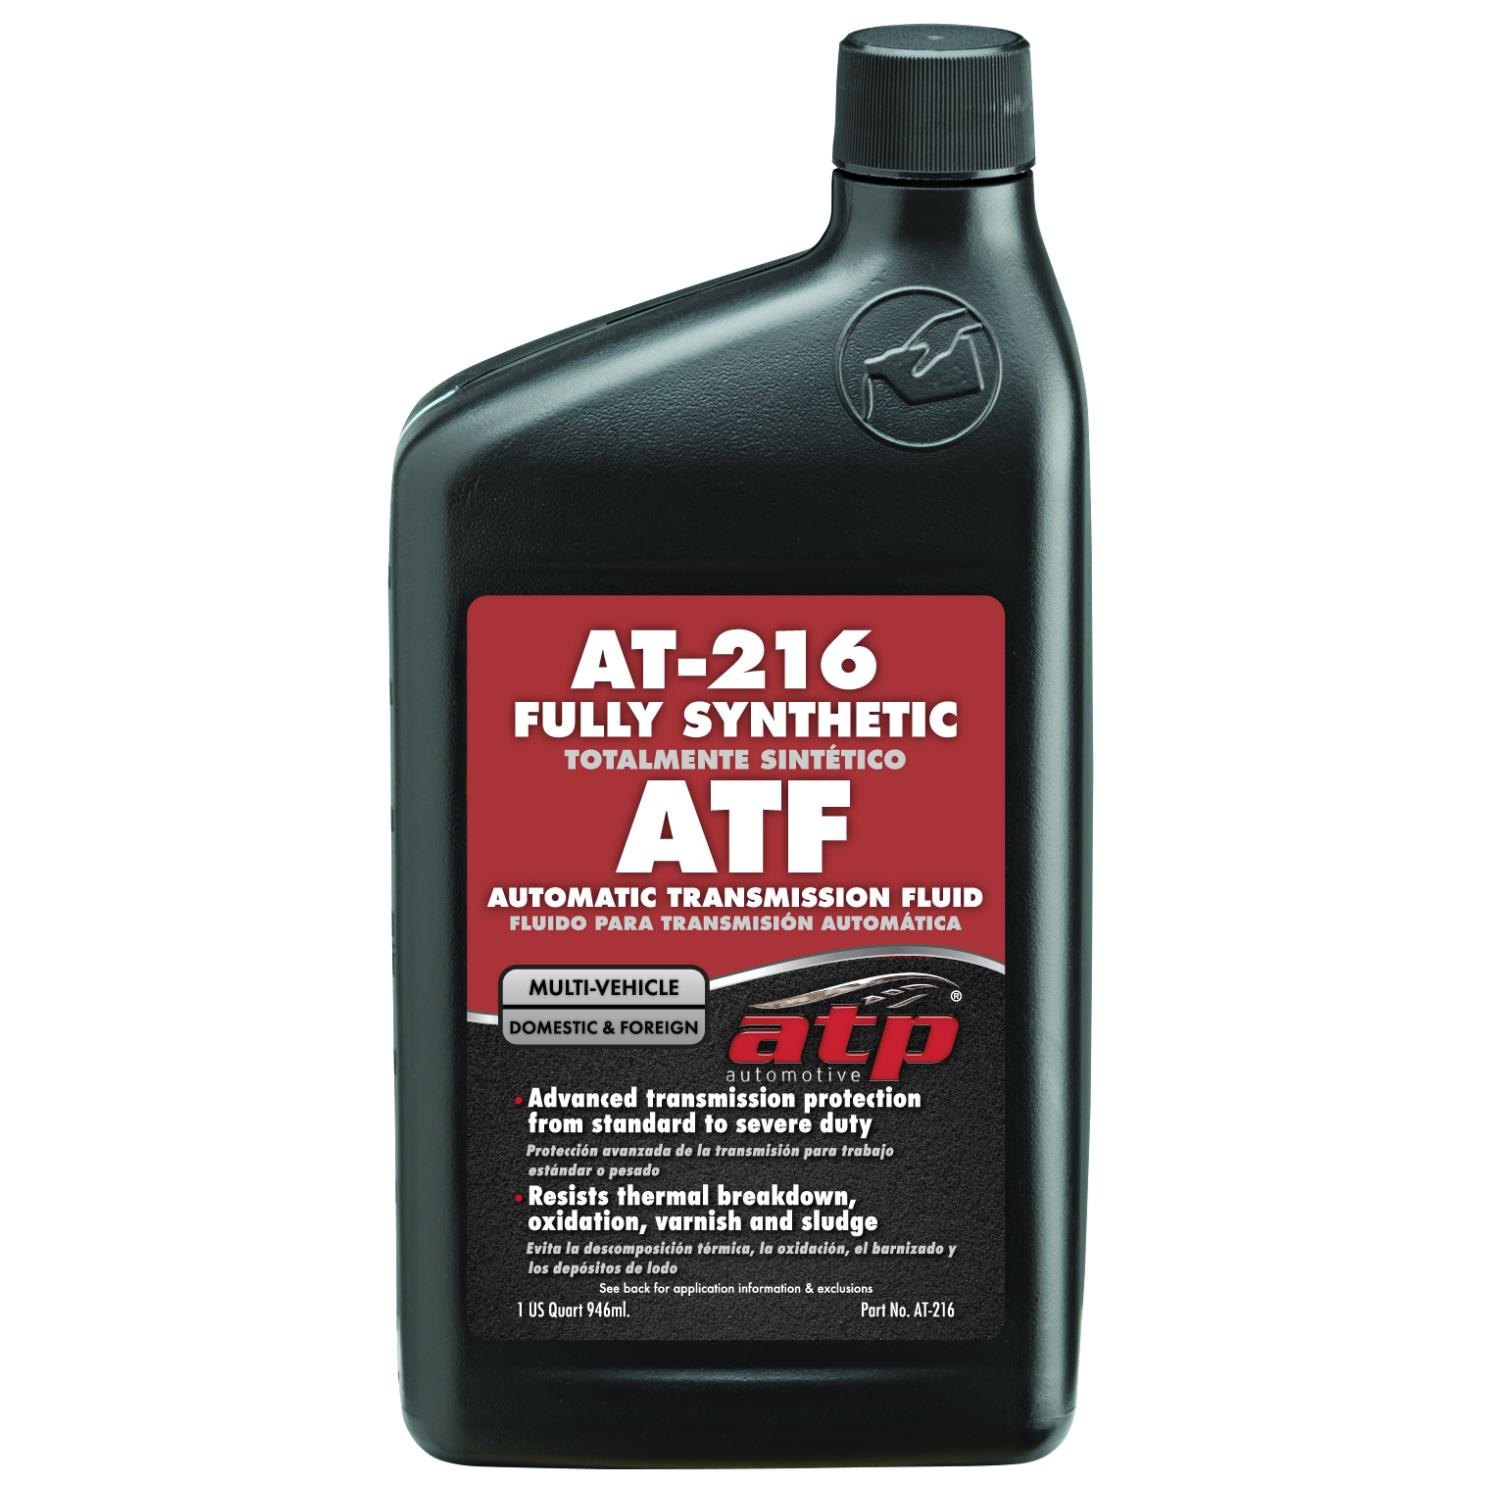 1999 gmc jimmy transmission fluid